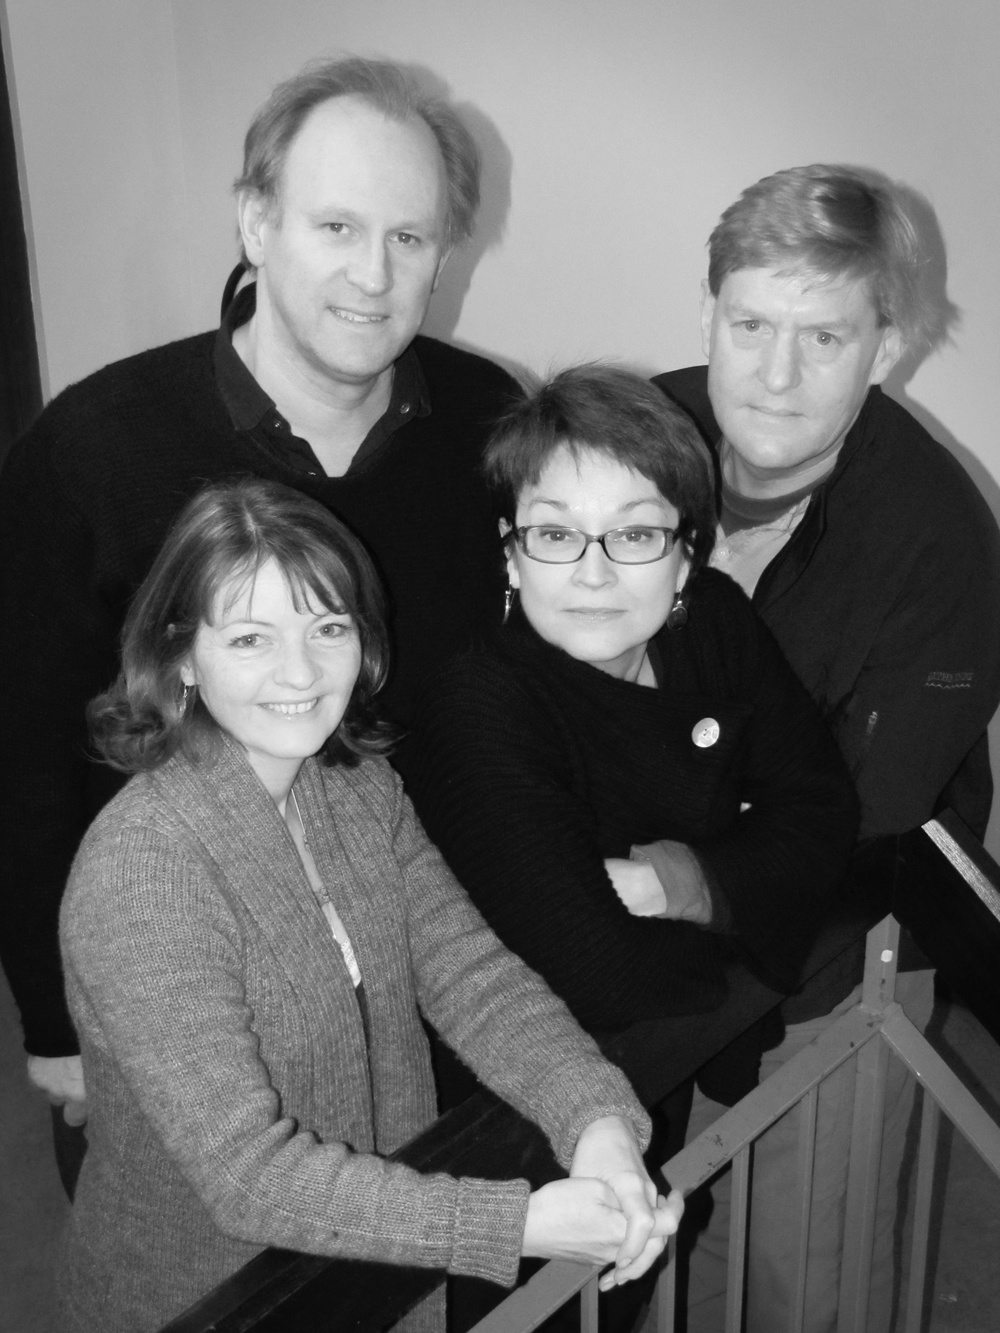 Peter Davison, Mark Strickson, Janet Fielding, Sarah Sutton.